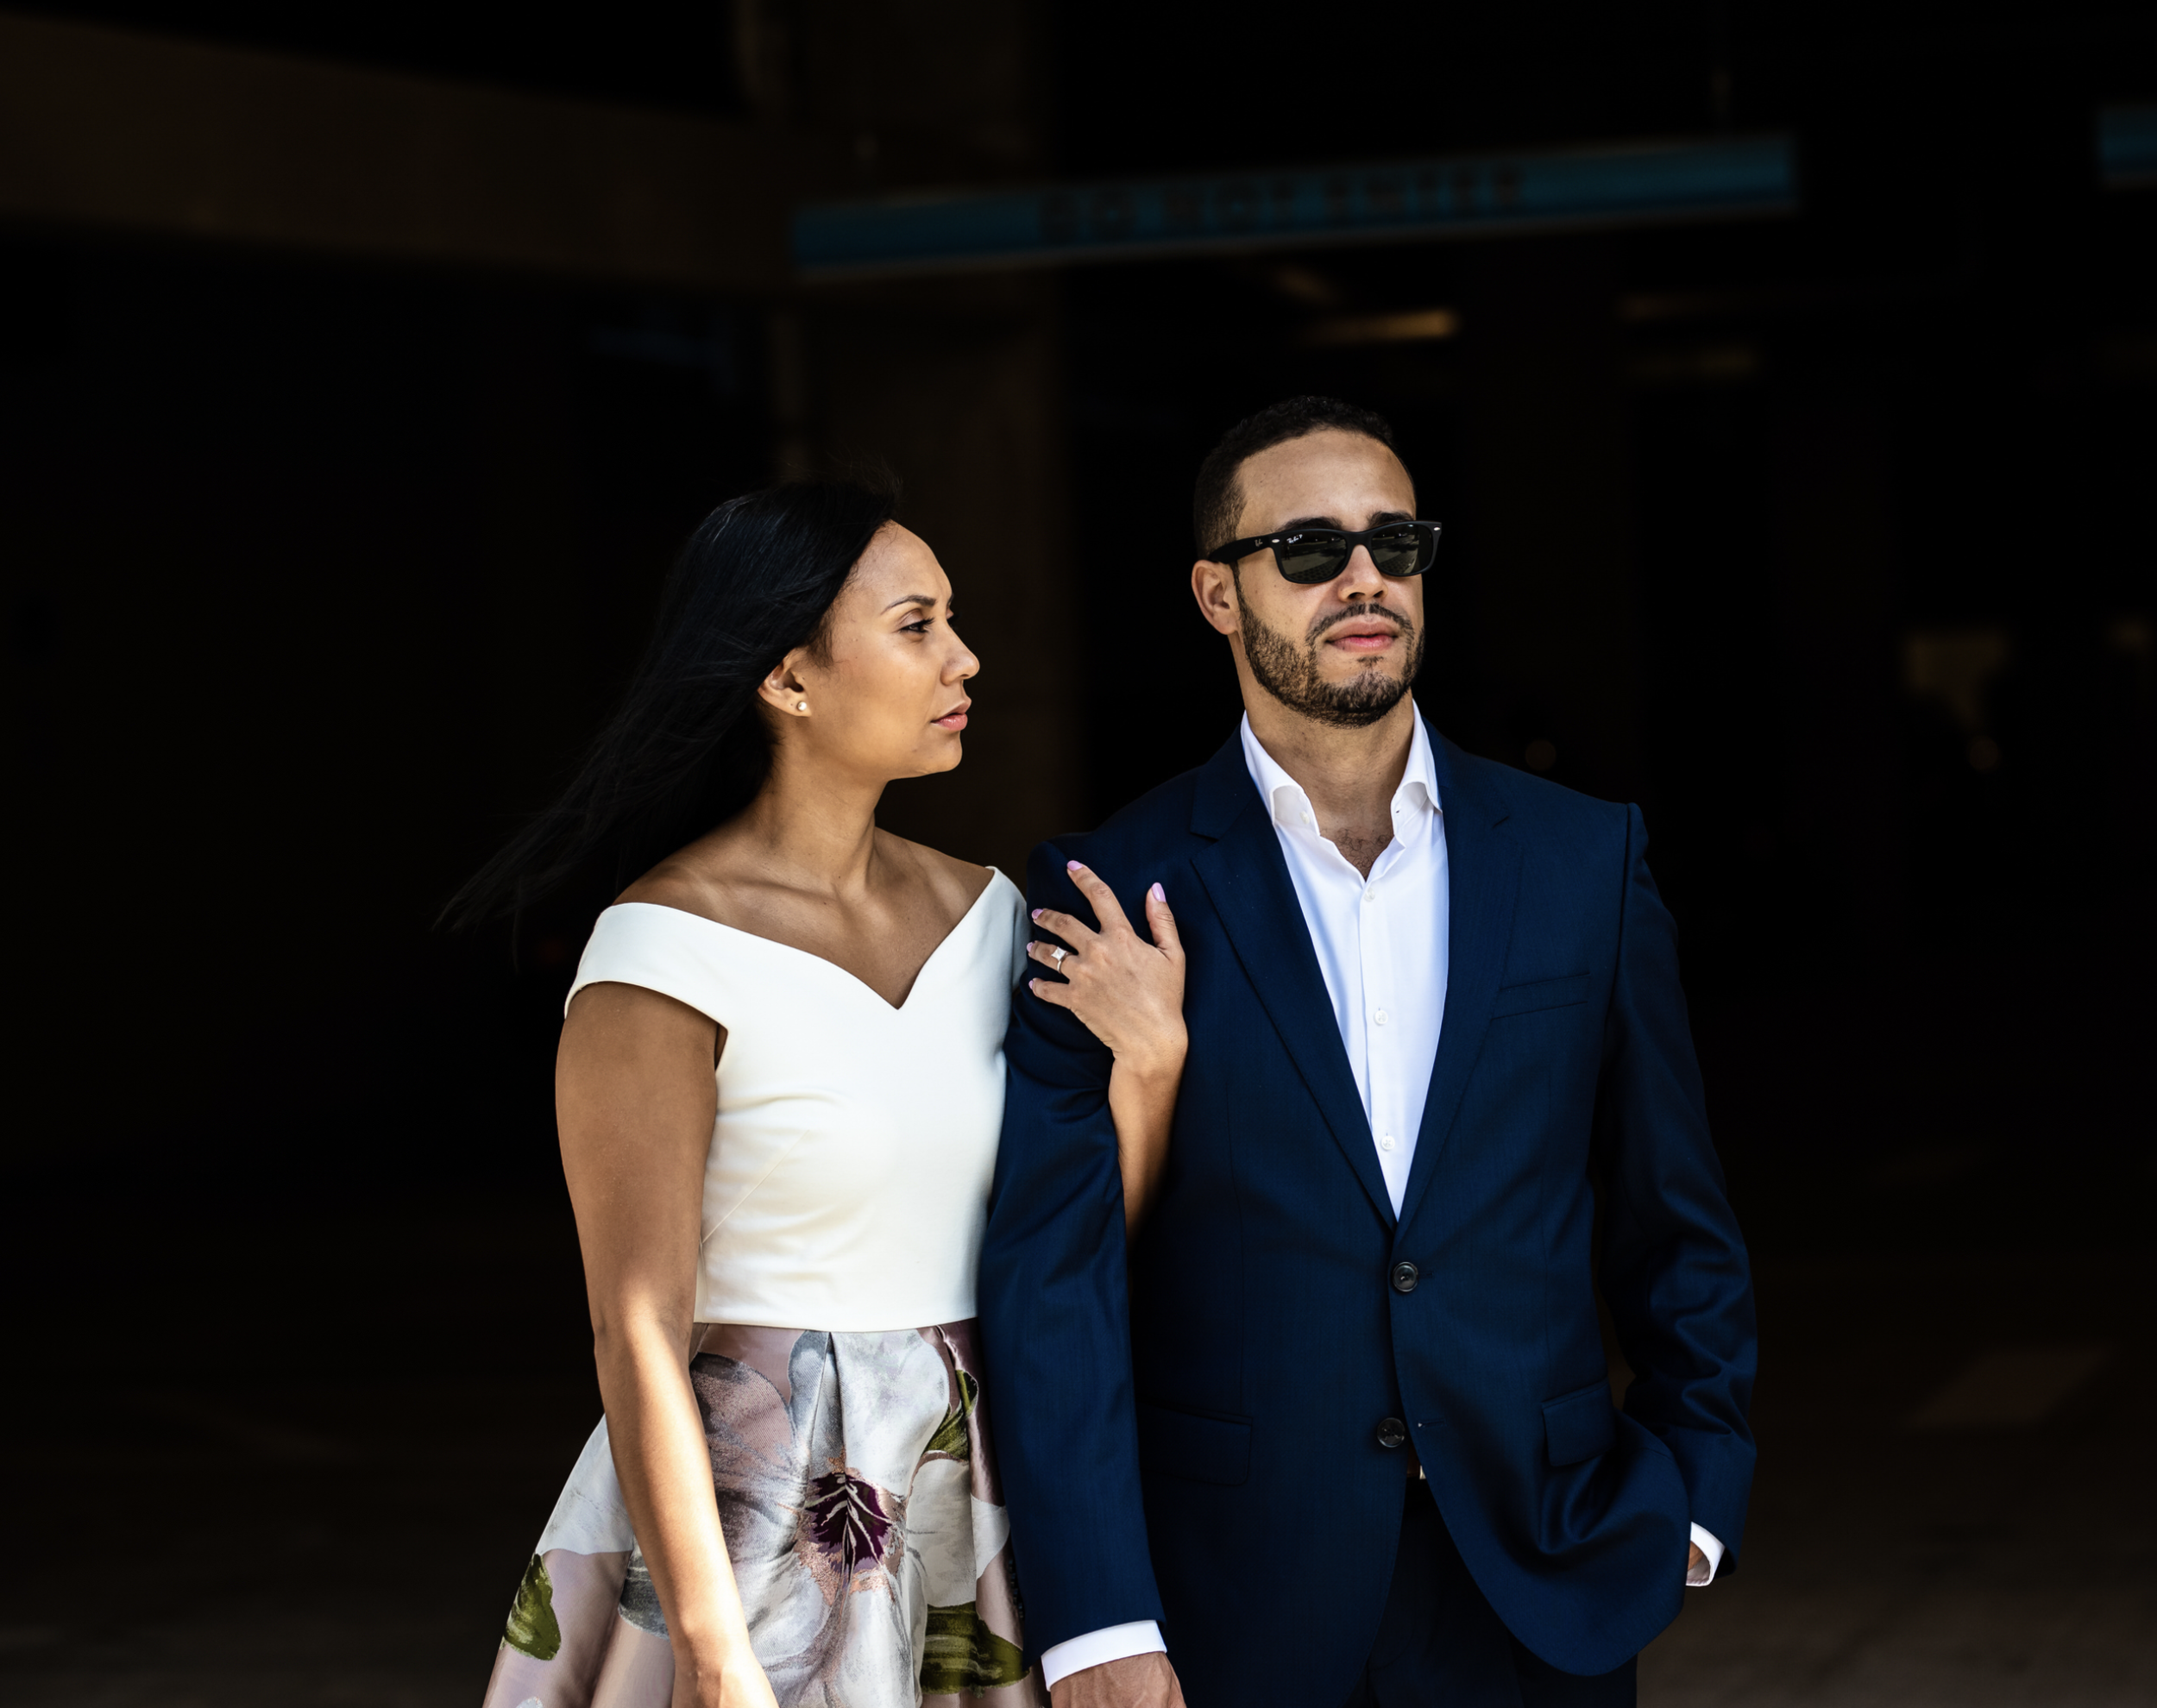 Downtown Orlando Engagement Photo